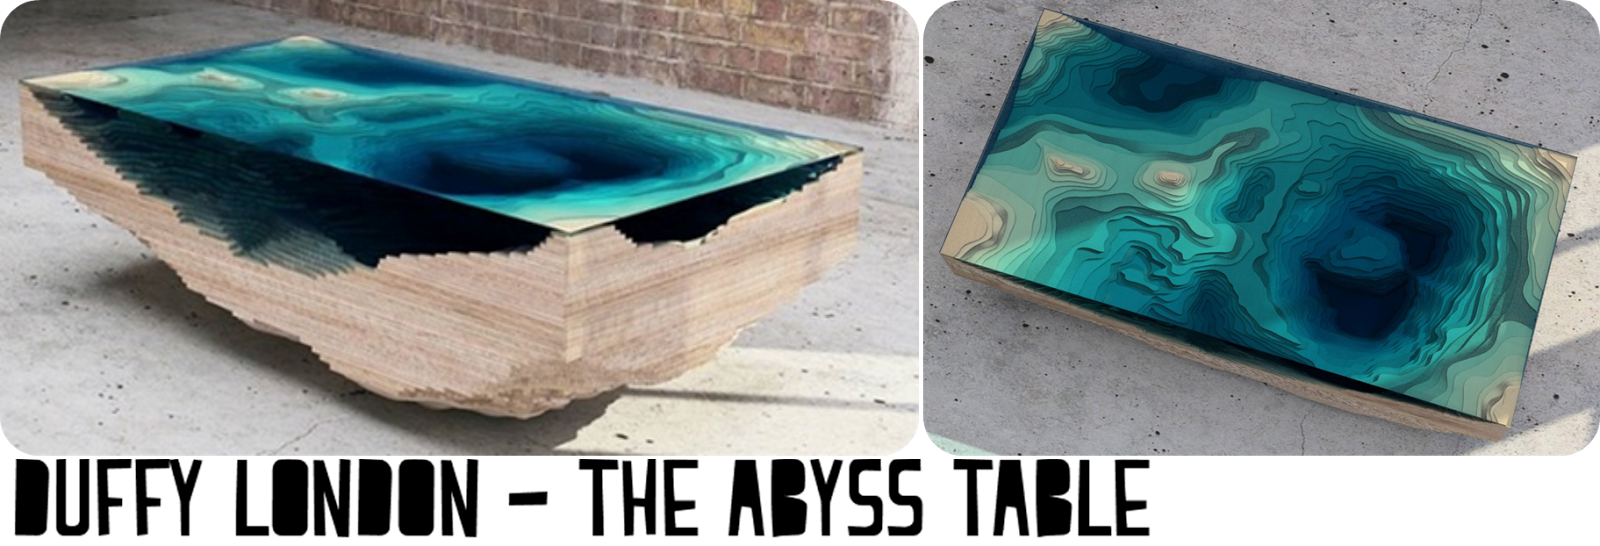 http://duffylondon.com/product/tables/abyss-table/